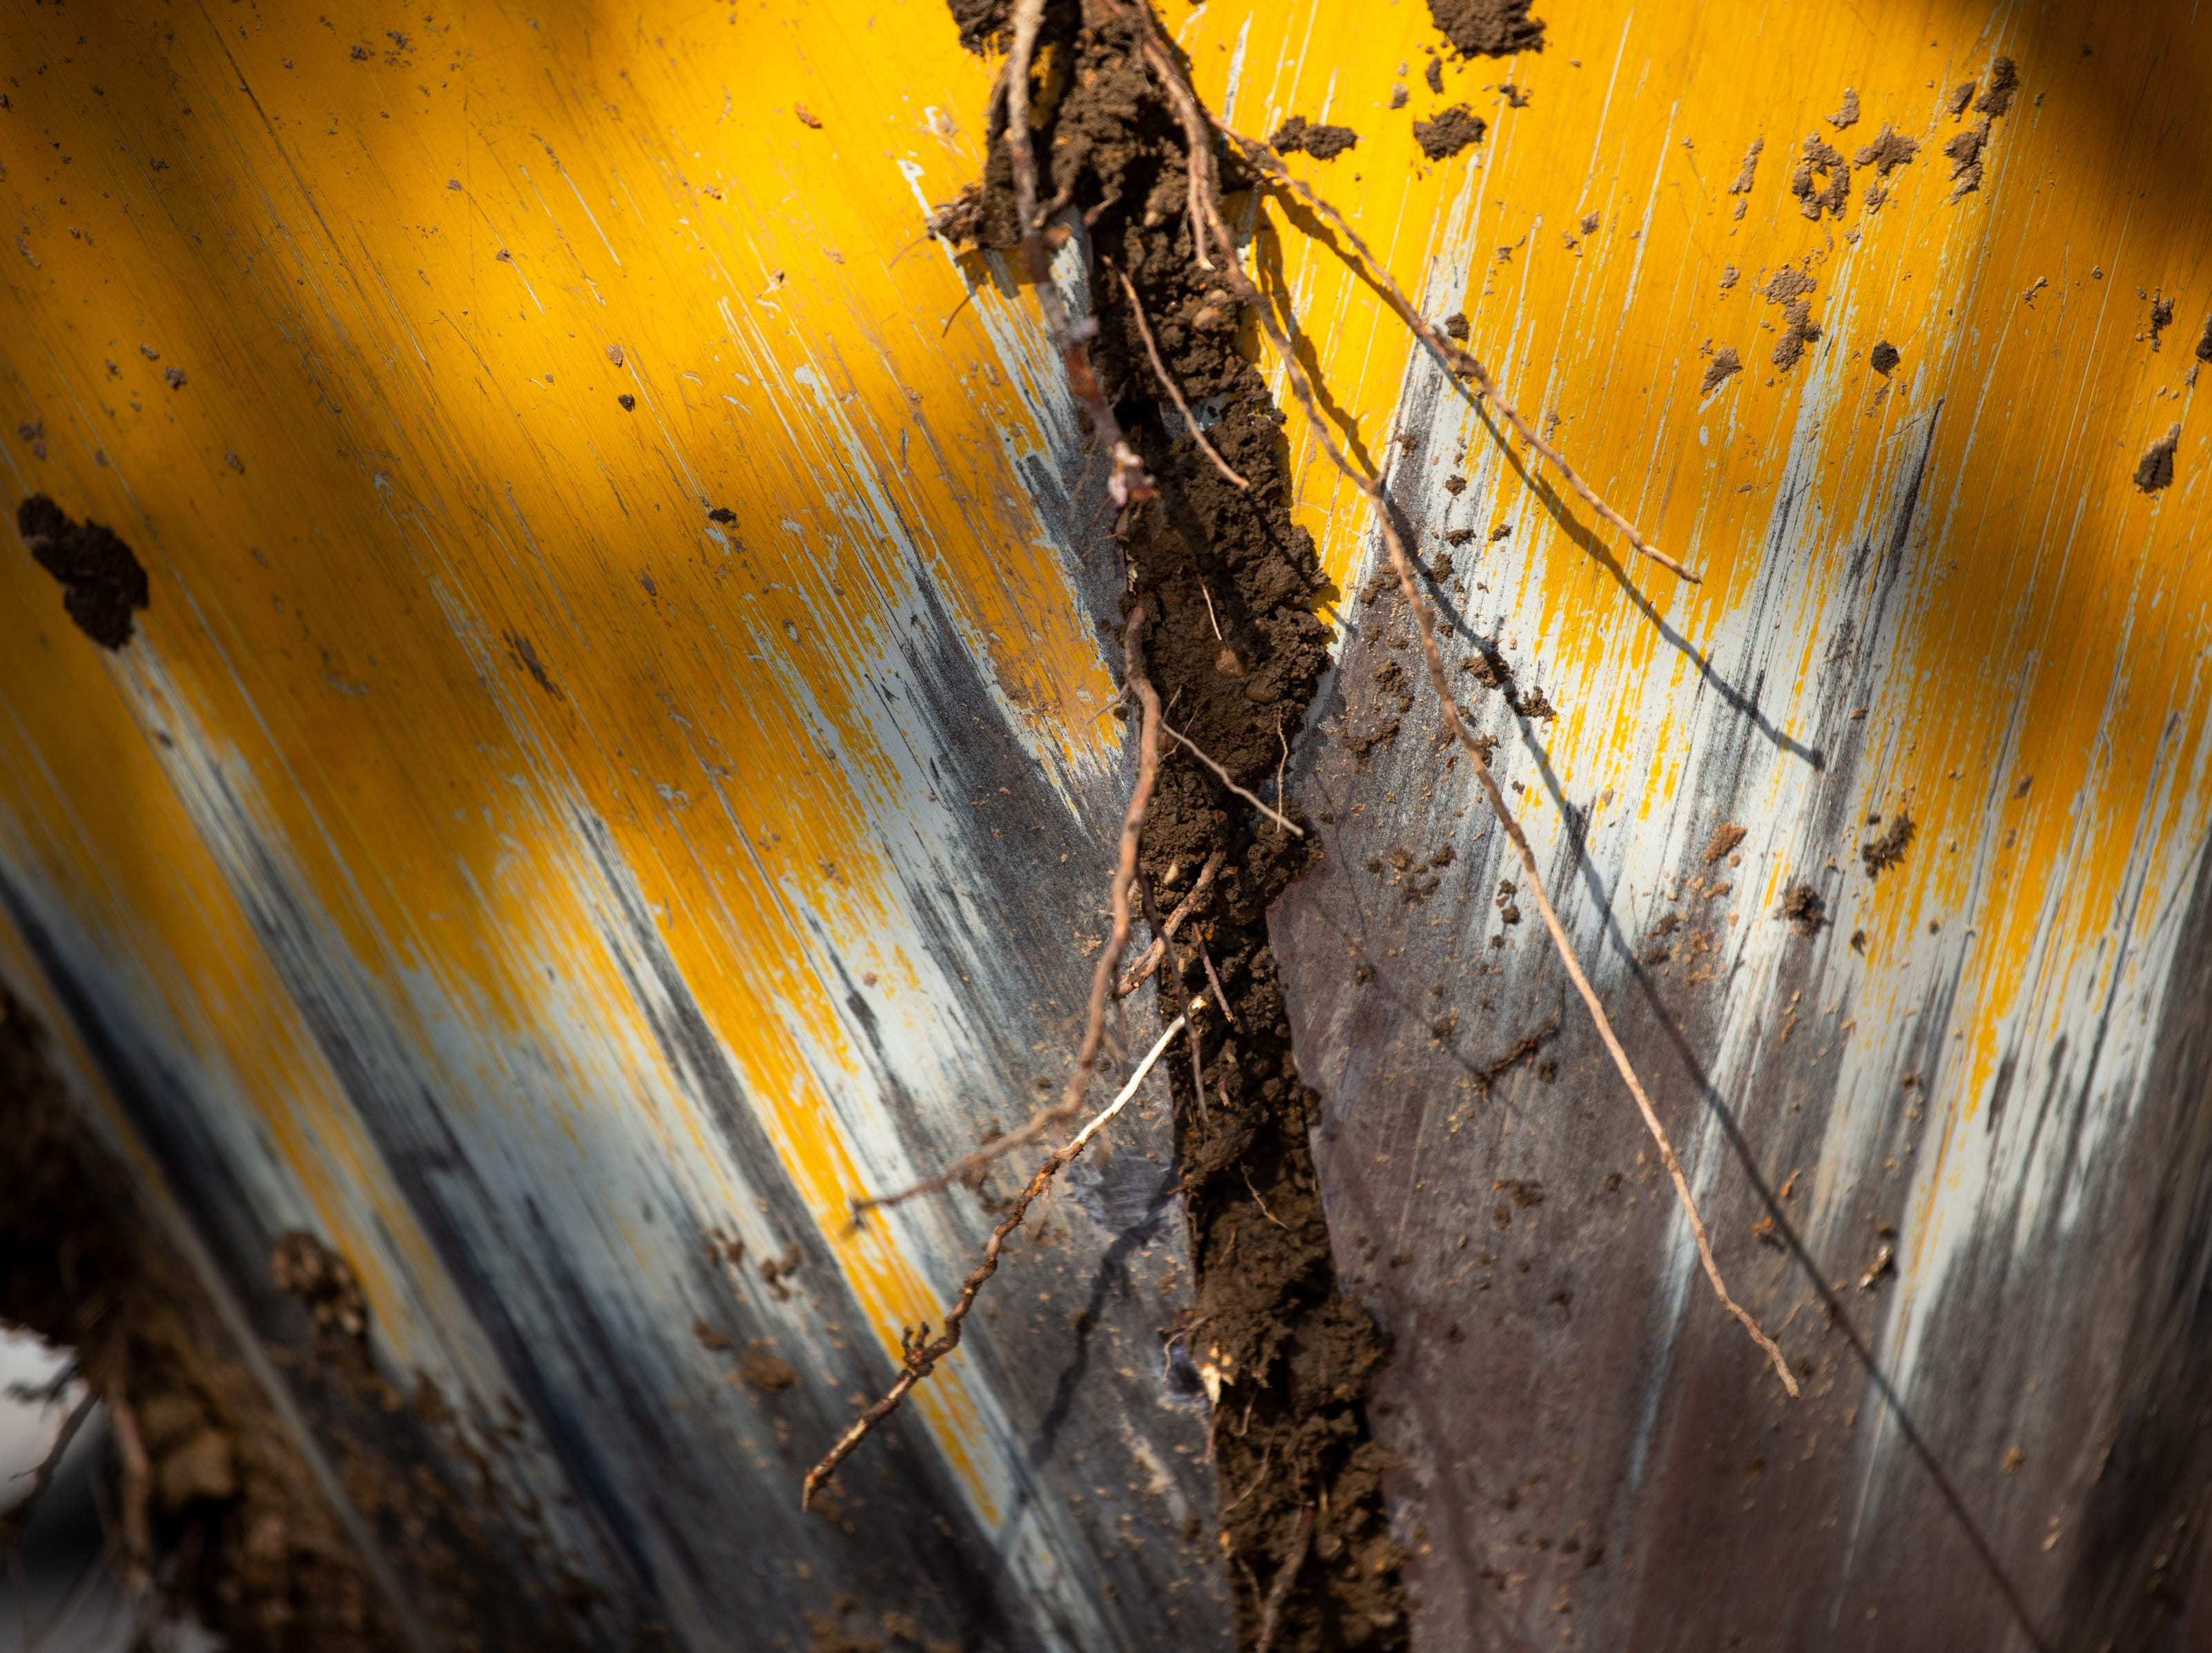 Roots from a Yoshino Cherry tree stick out during relocation along the riverfront Wednesday, April 3, 2019, in Nashville, Tenn. The City is transplanting the trees after protest of chopping the trees down to make room for a giant stage for the upcoming NFL Draft.